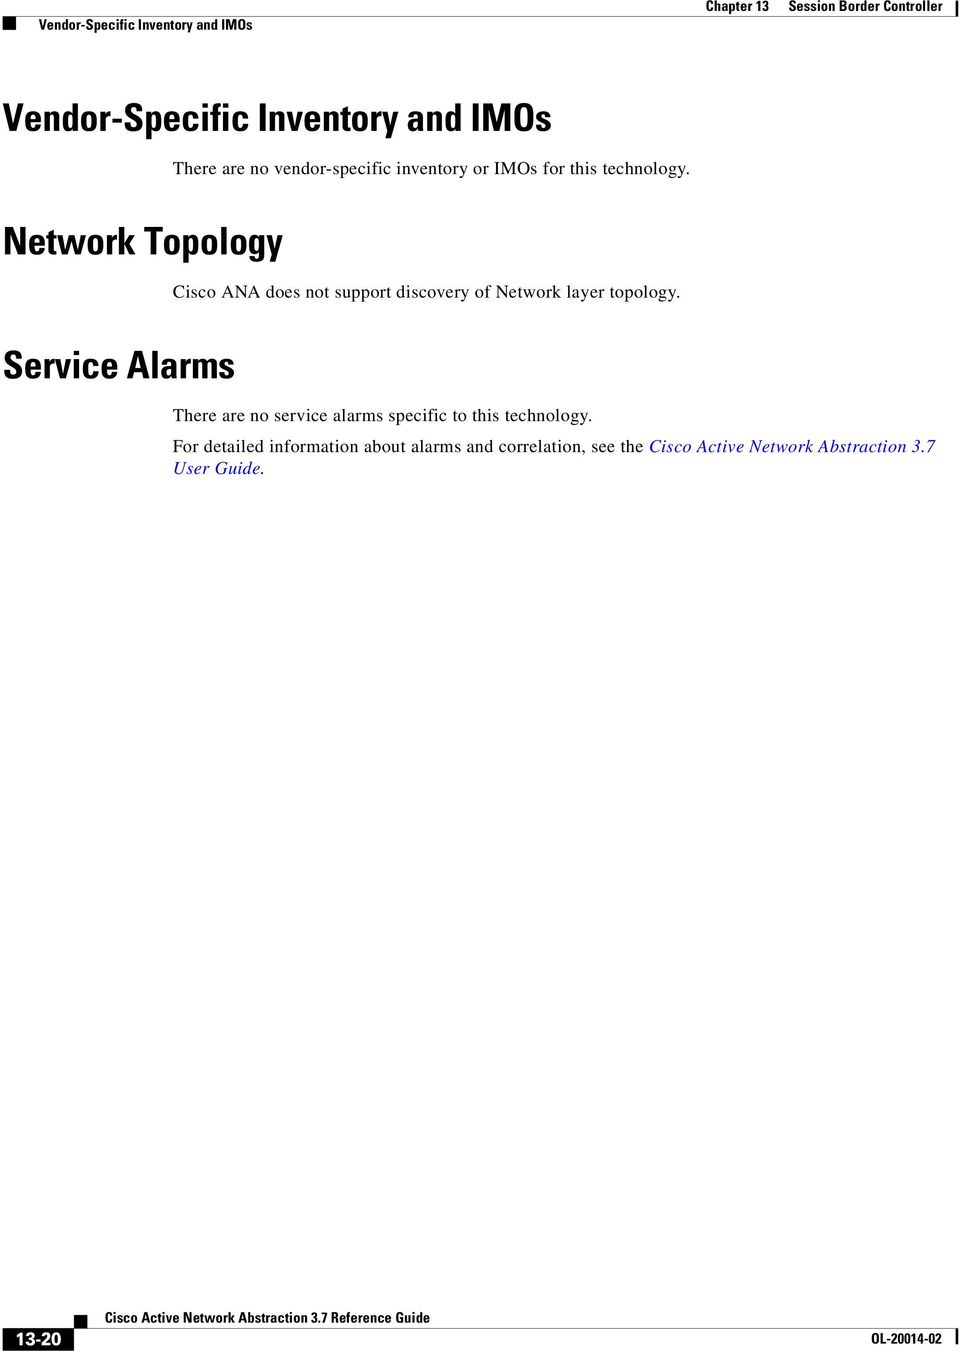 Network Topology Cisco ANA does not support discovery of Network layer topology.